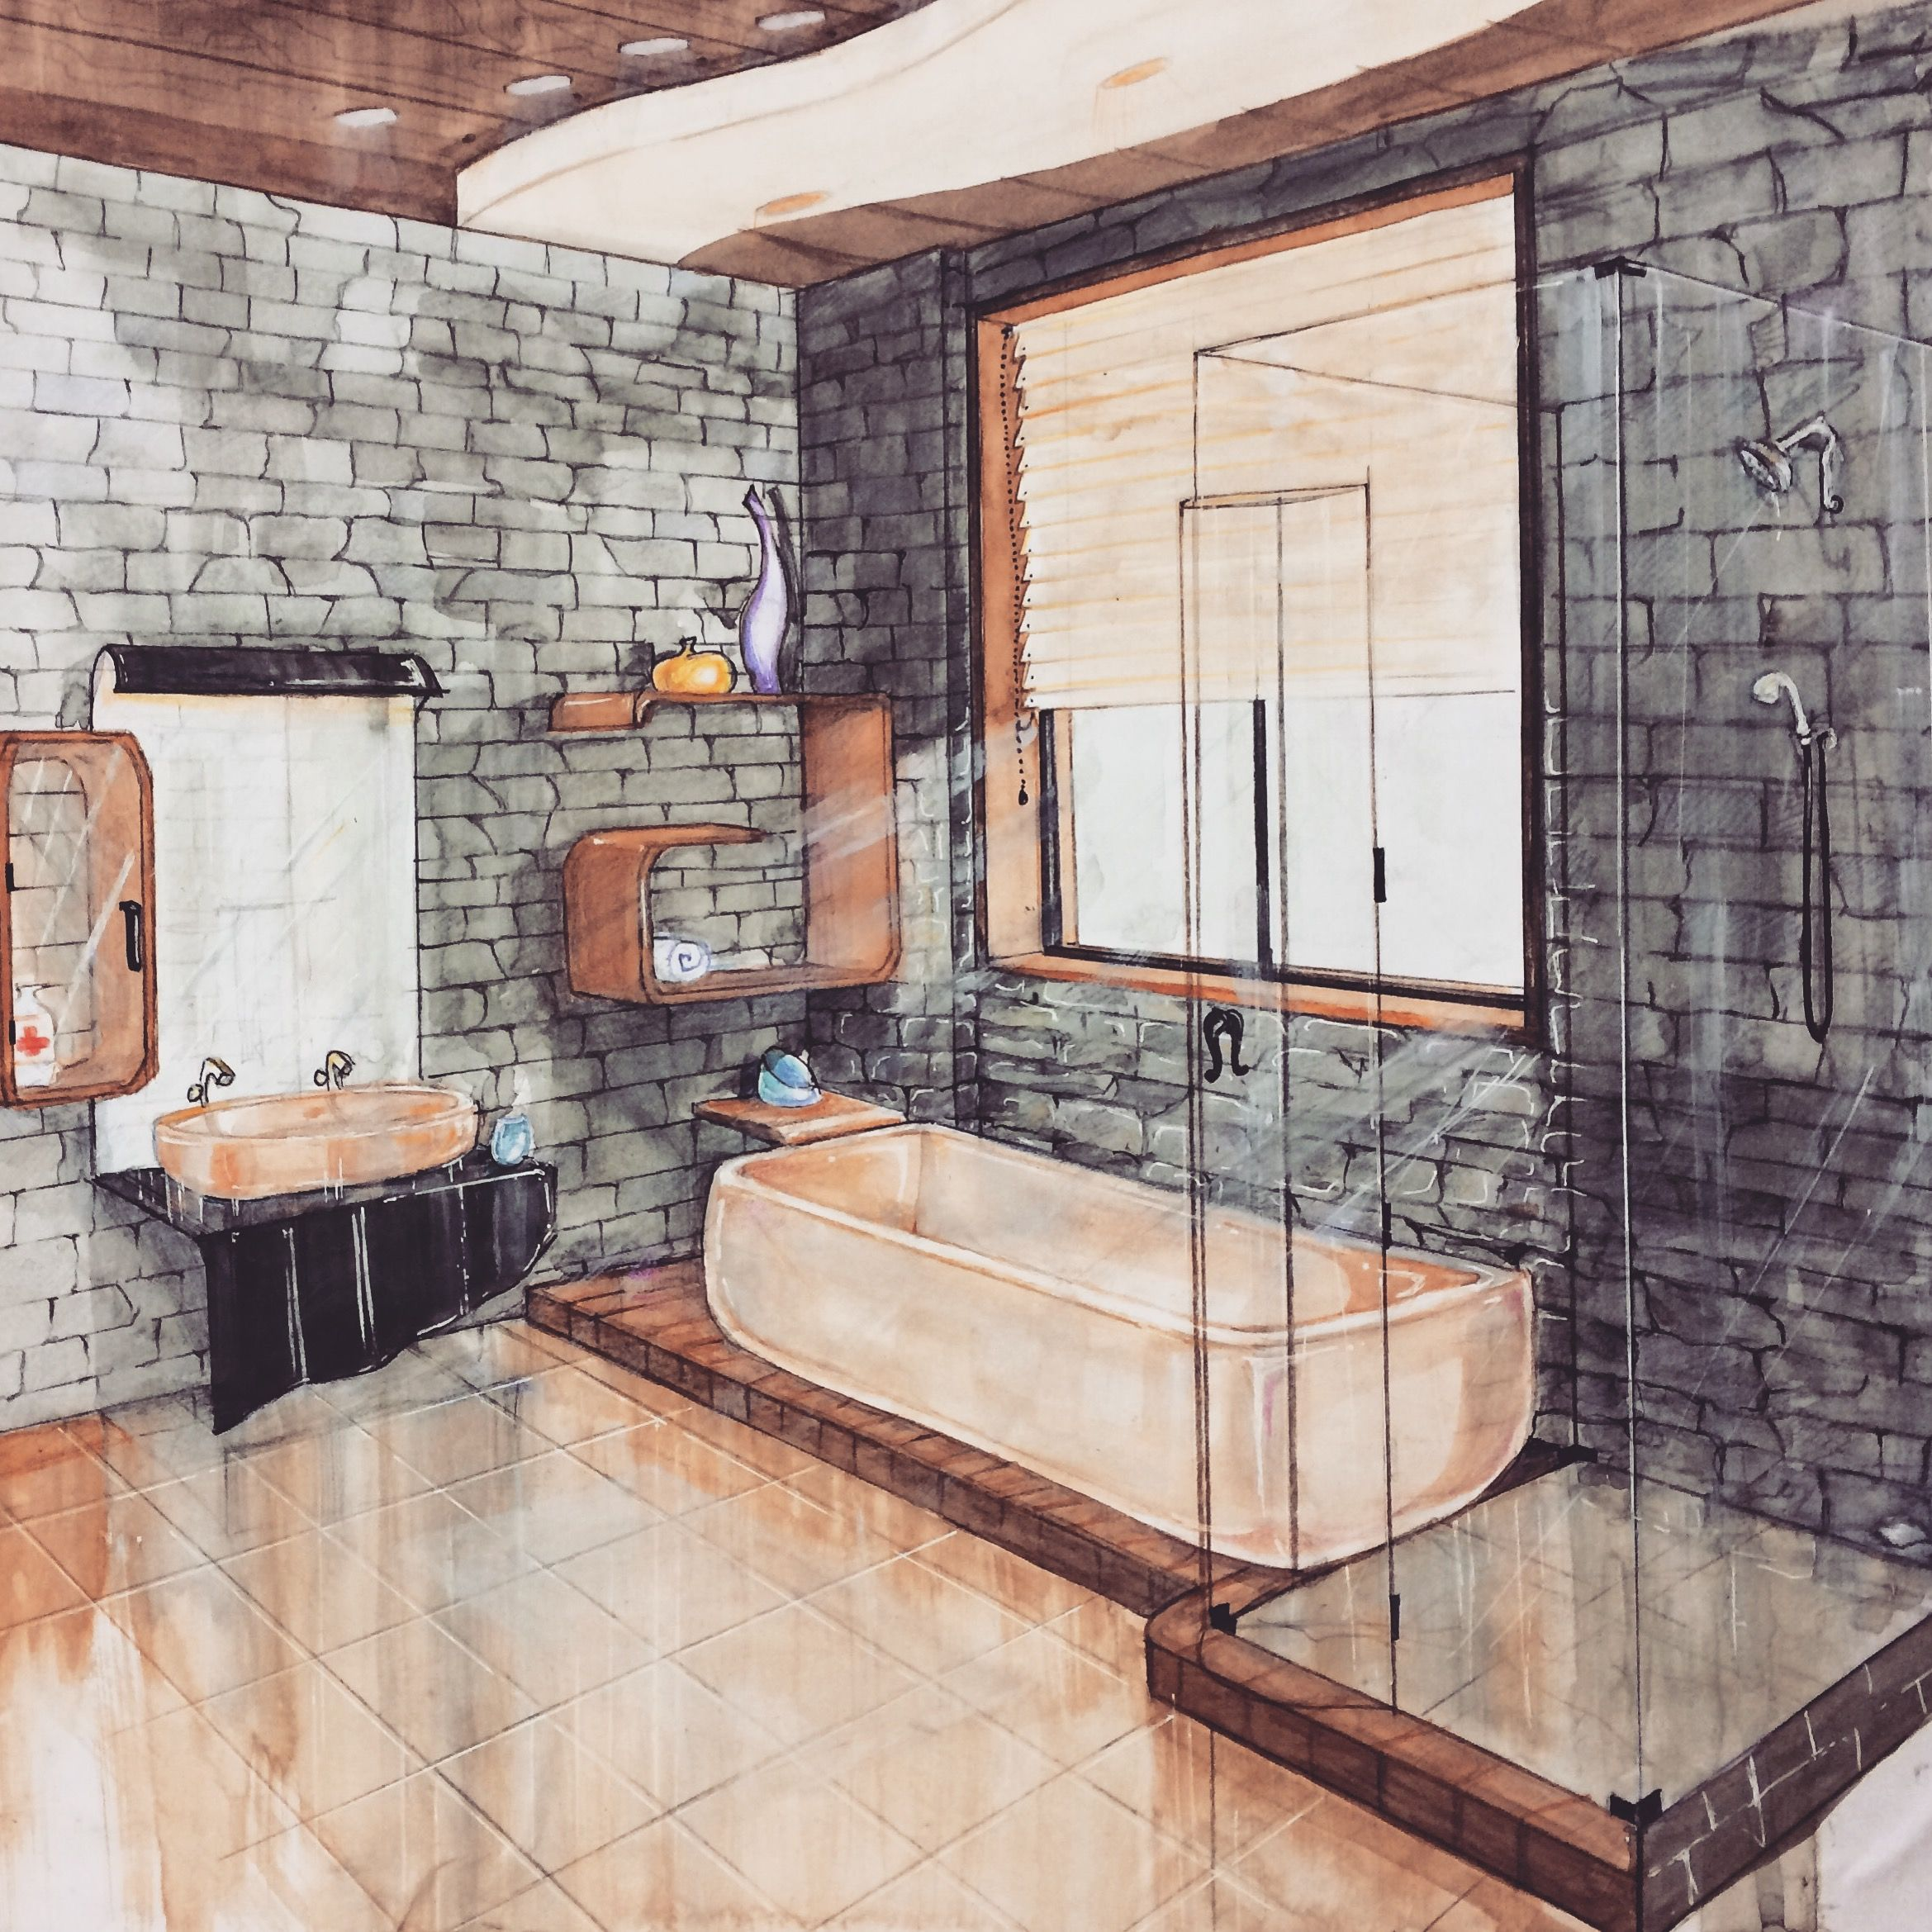 my watercolour perspective view of designer bathroom watercolour